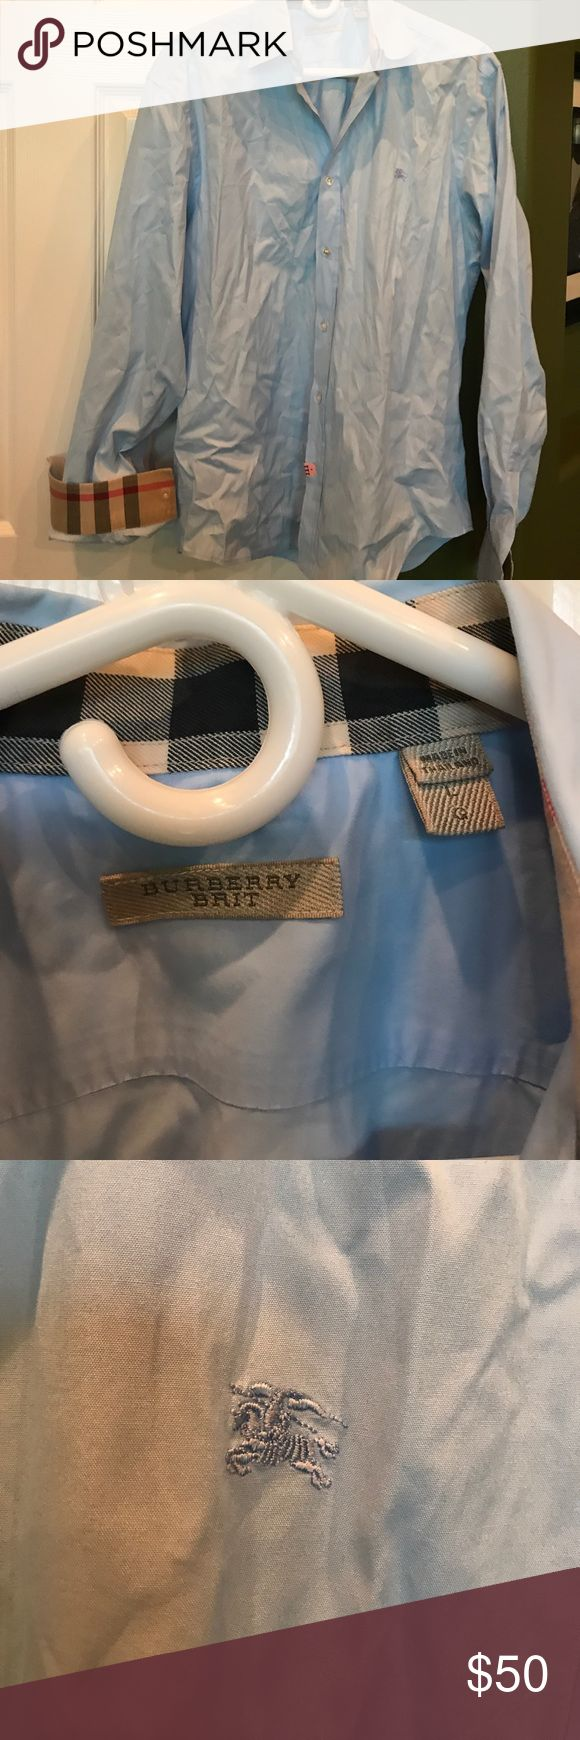 Burberry Brit men's dress shirt Authentic, excellent condition, no flaws, has only been dry cleaned, non smoking home Burberry Shirts